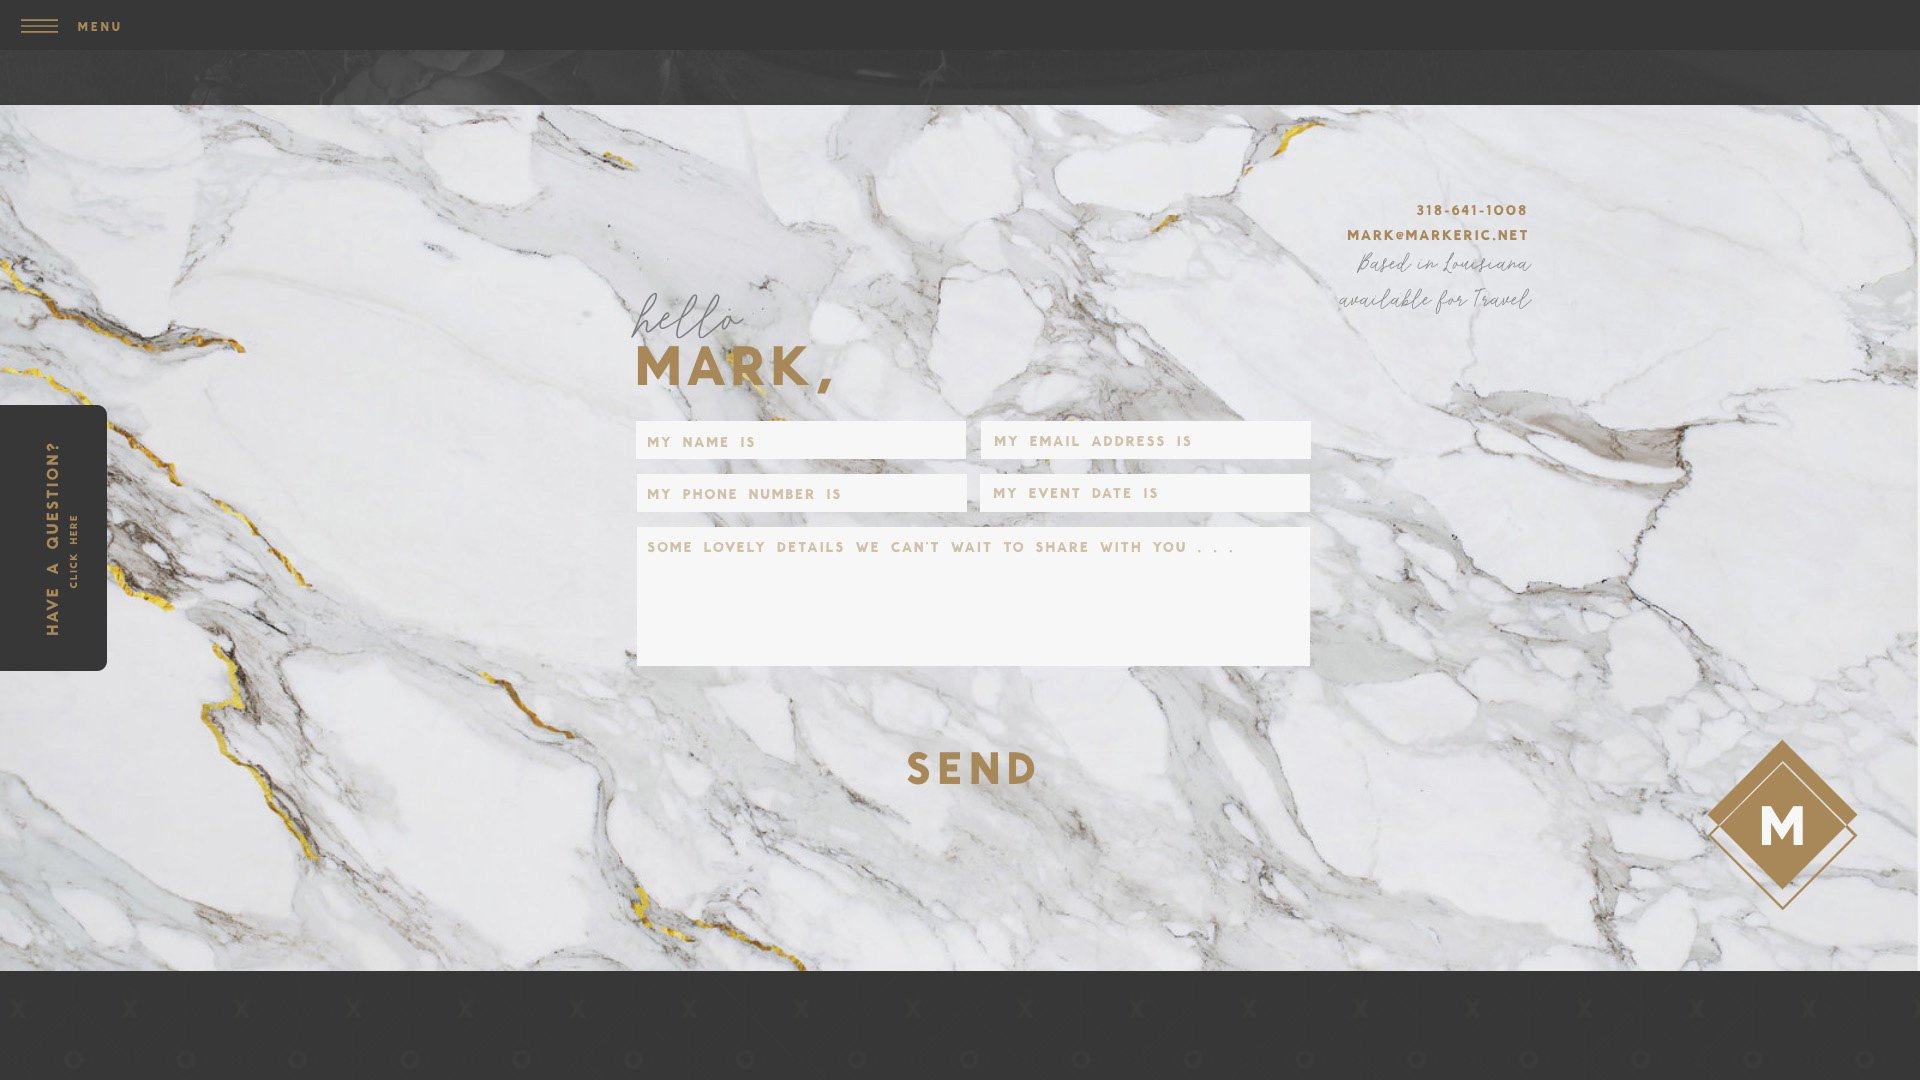 Mark's Contact Page